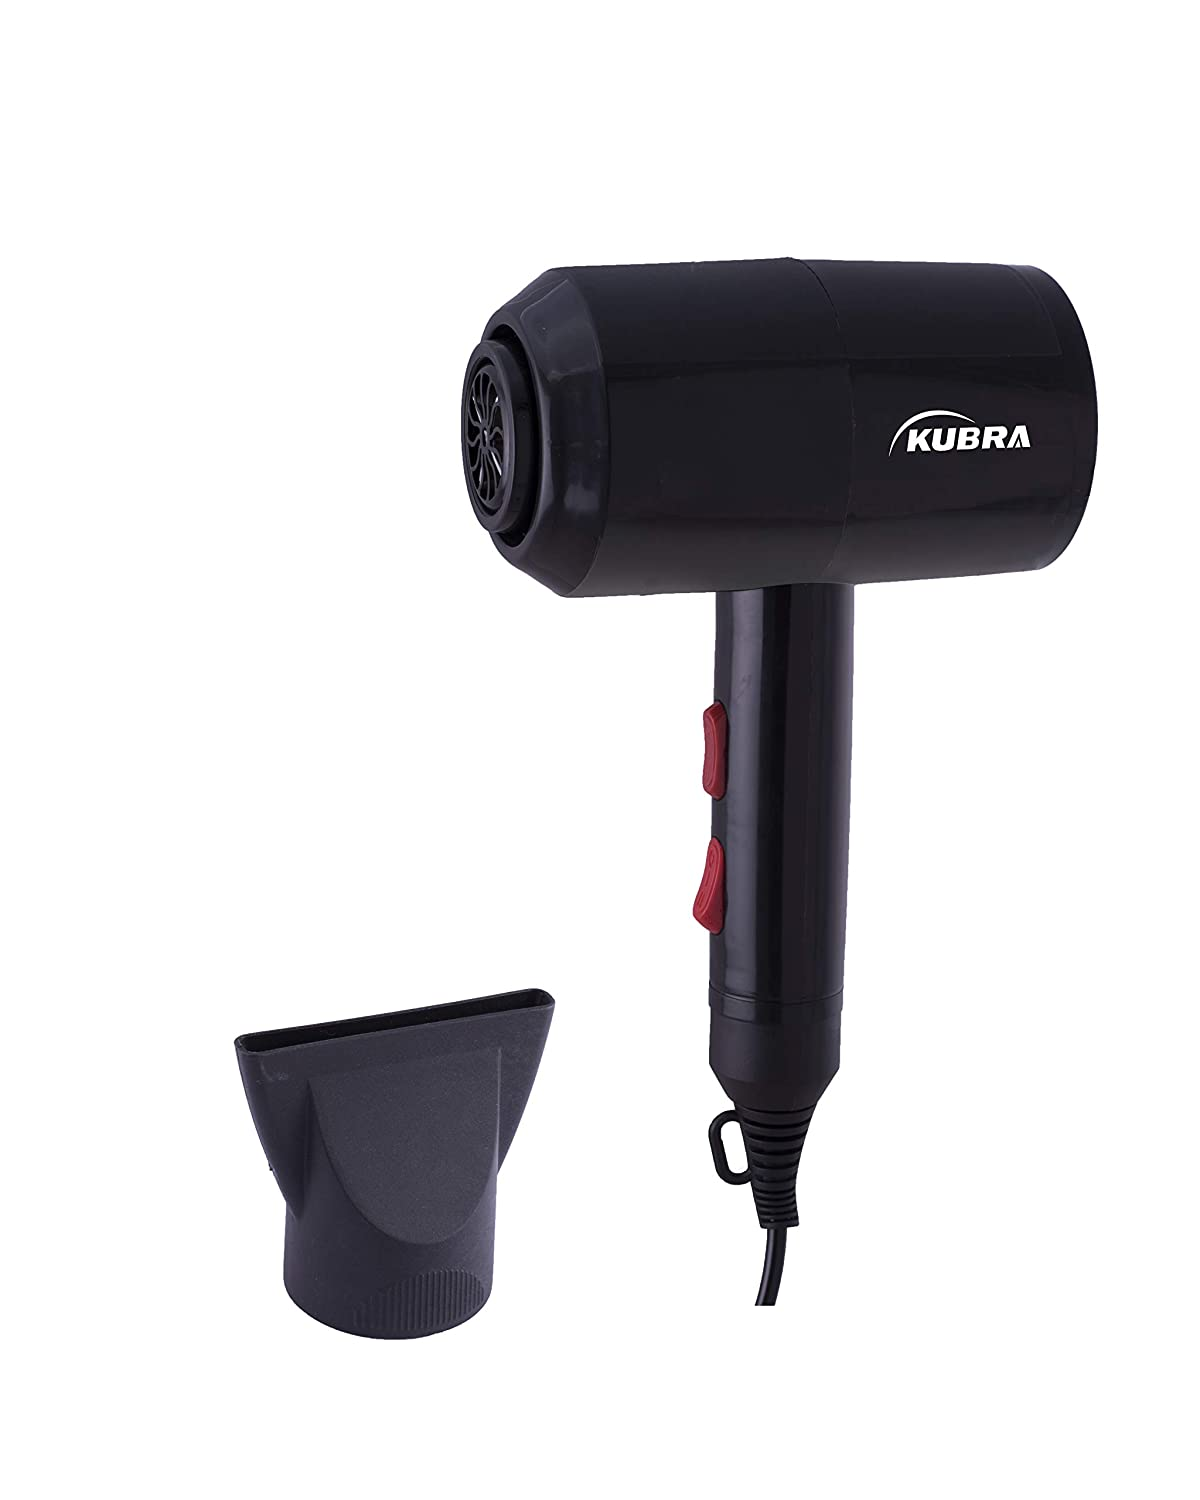 Kubra KB-153 Hair Dryer 1800W Hot and Cold (Black)